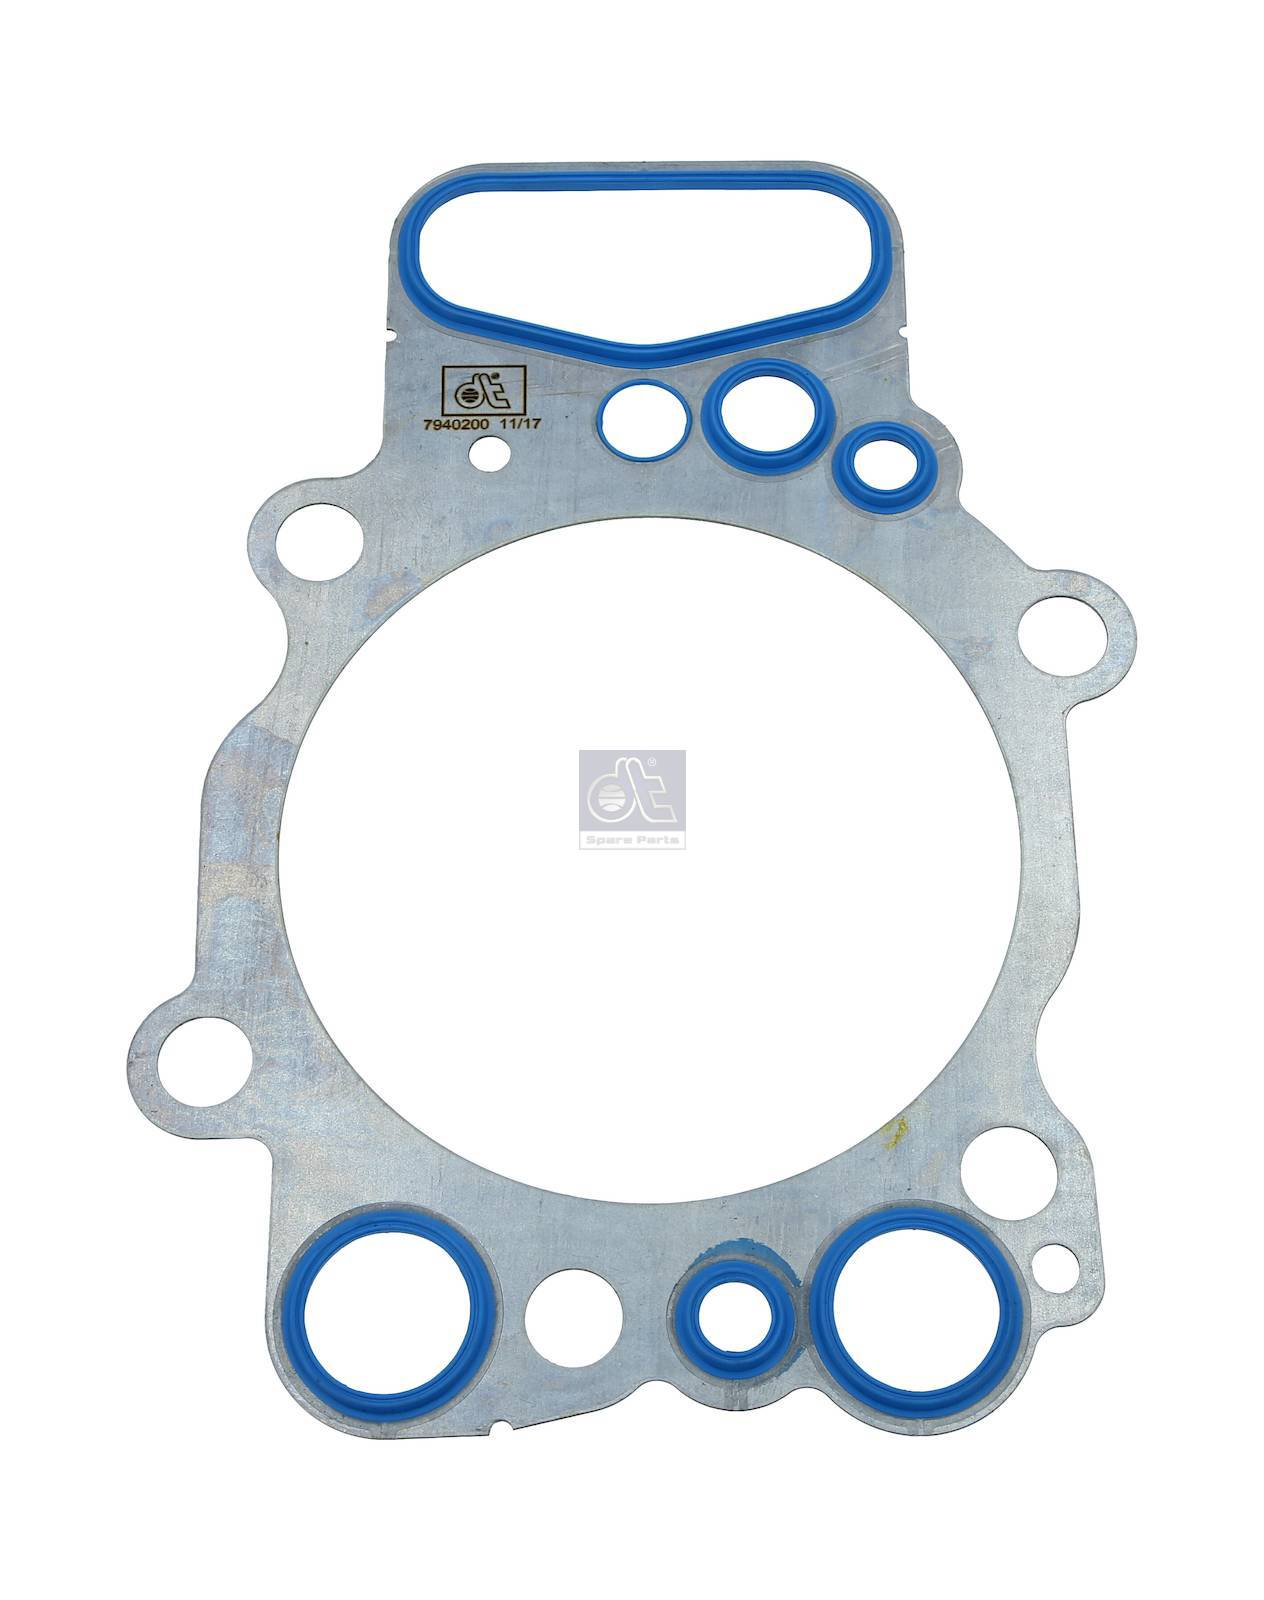 Cylinder head gasket, old version